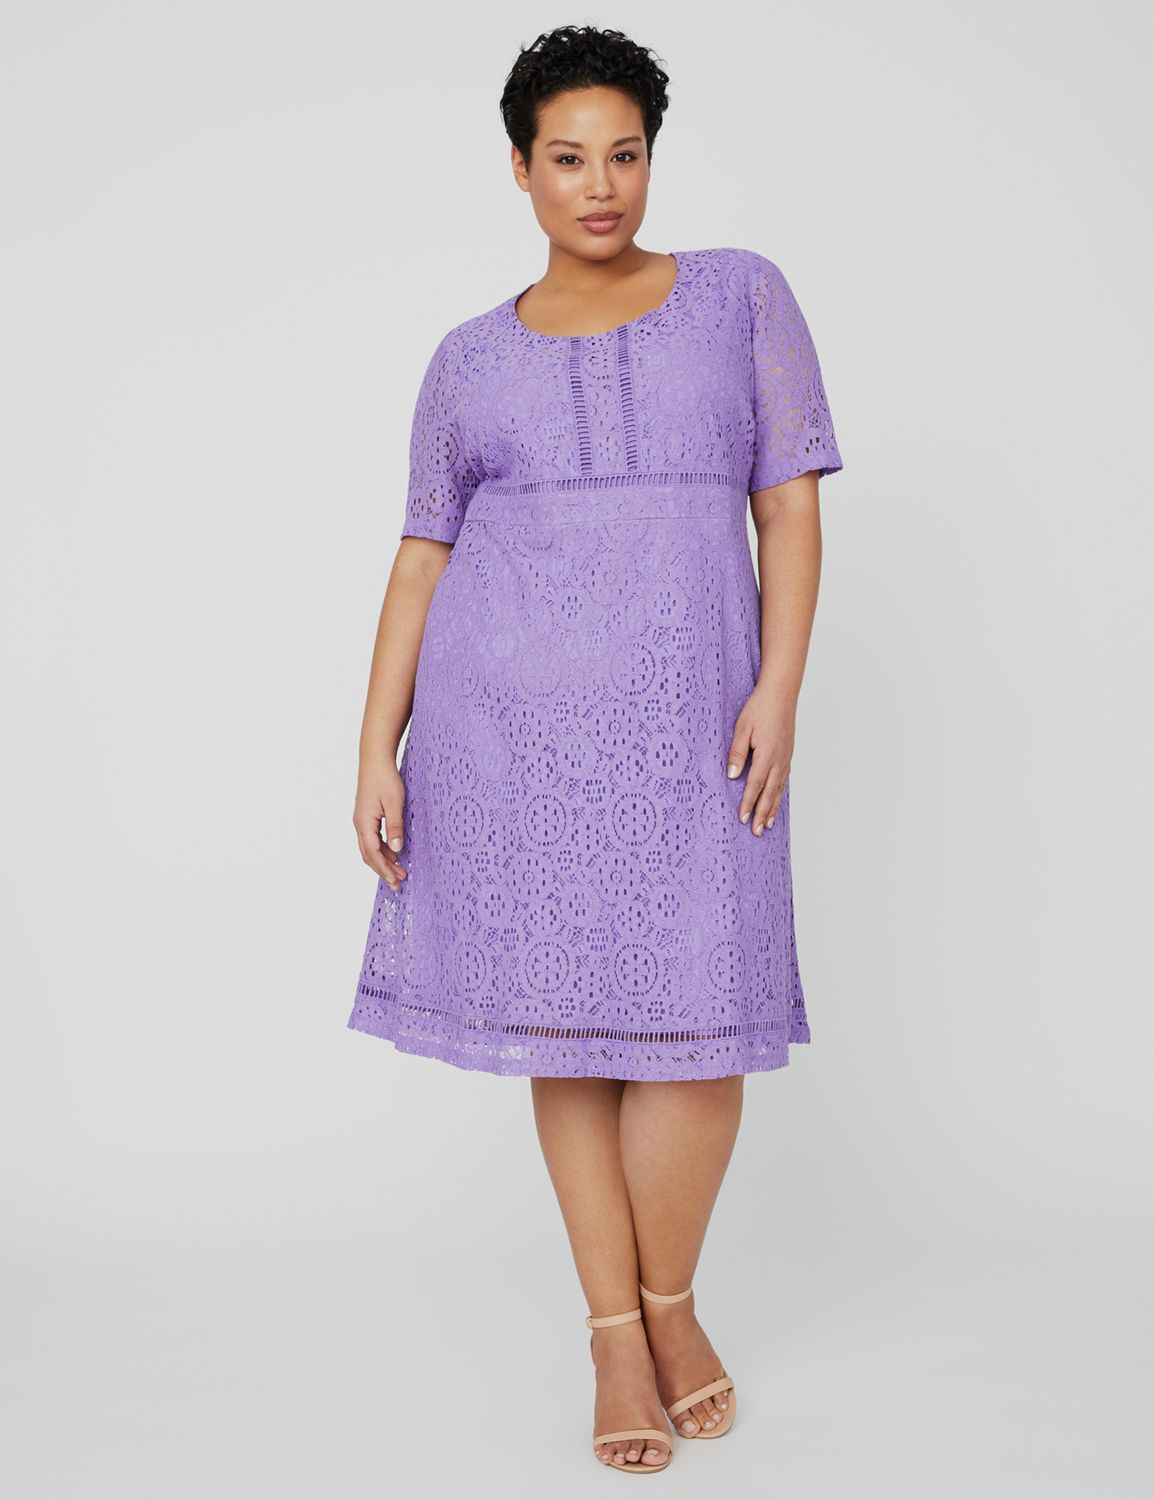 Violet Lace Dress 1091036 A Line Lace Dress with Trim MP-300100577